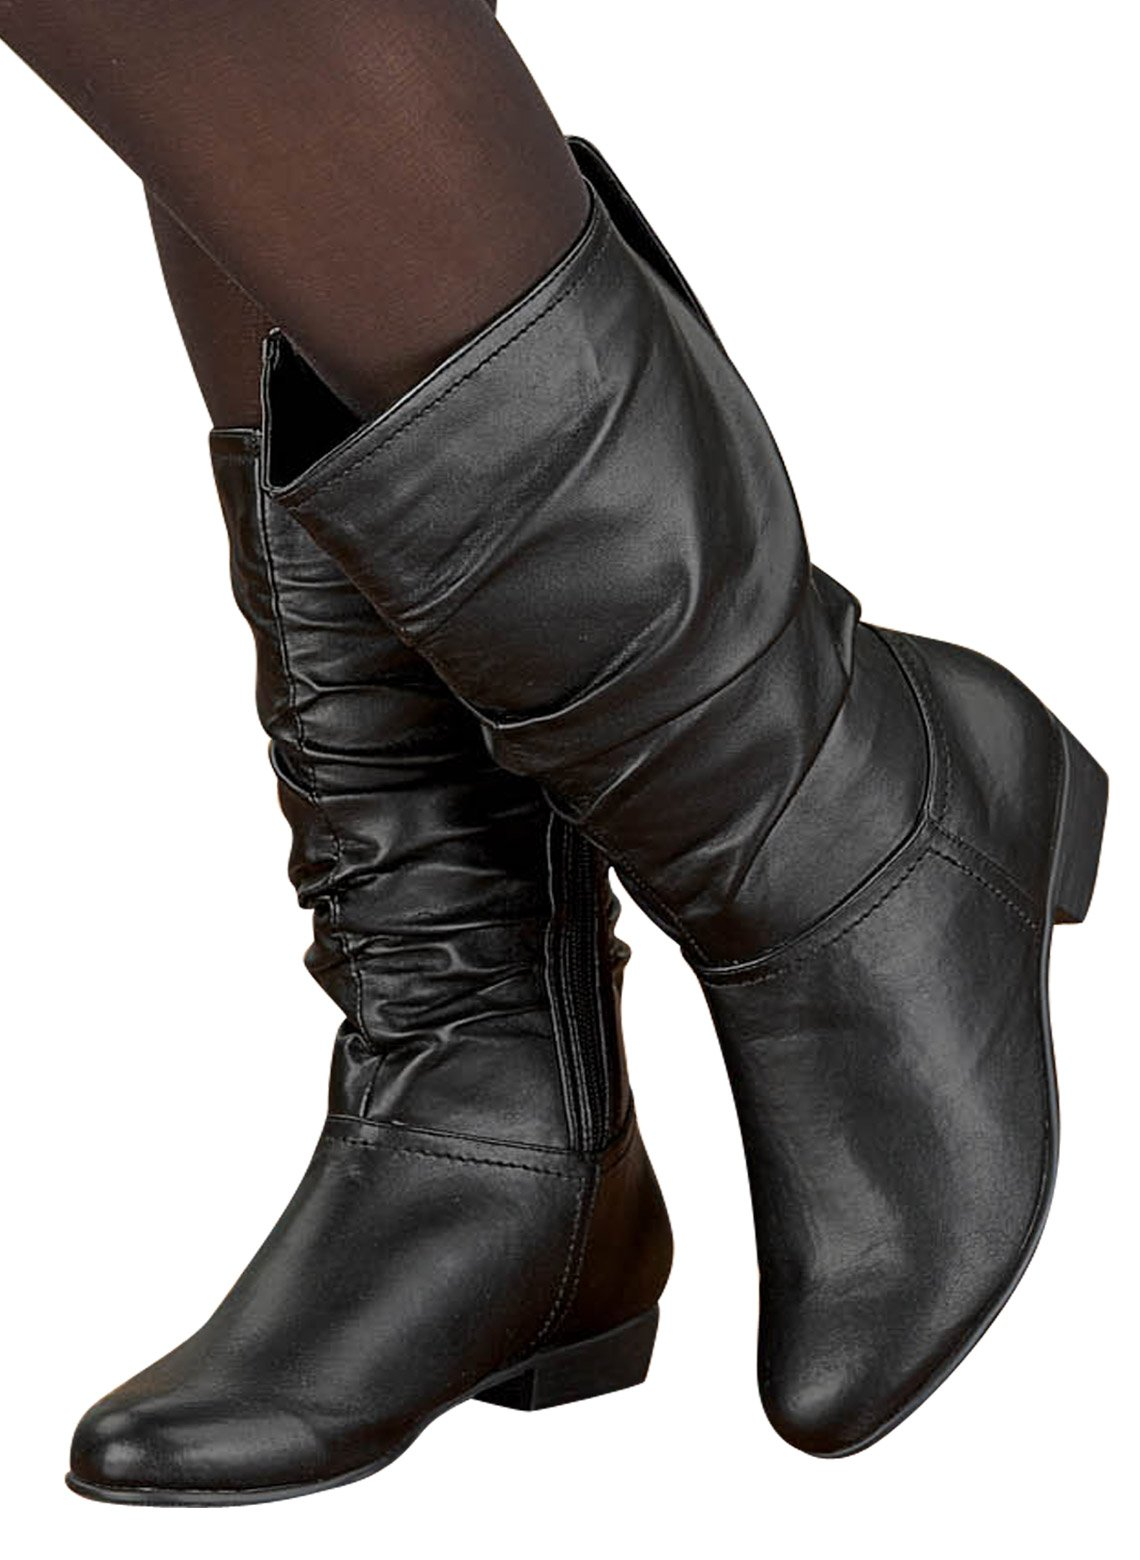 Carol Wright Gifts Scrunch Boots, Color Black, Size 7-1/2 (Extra Wide), Black, Size 7-1/2 (Extra Wide)